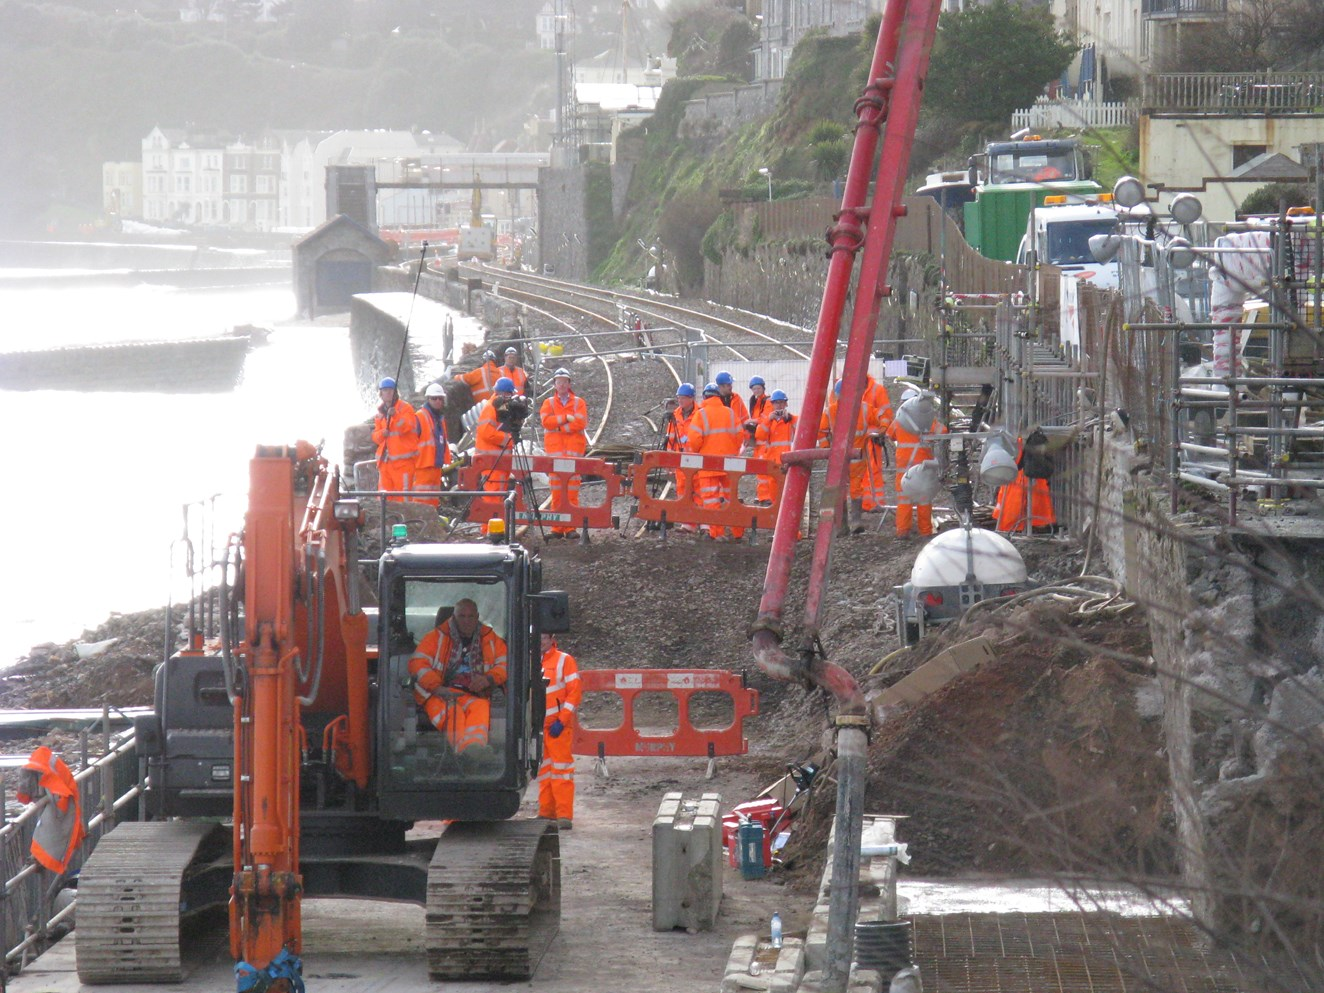 Find out more about plans to protect vital railway artery to the South West: Drop in events will take place this autumn